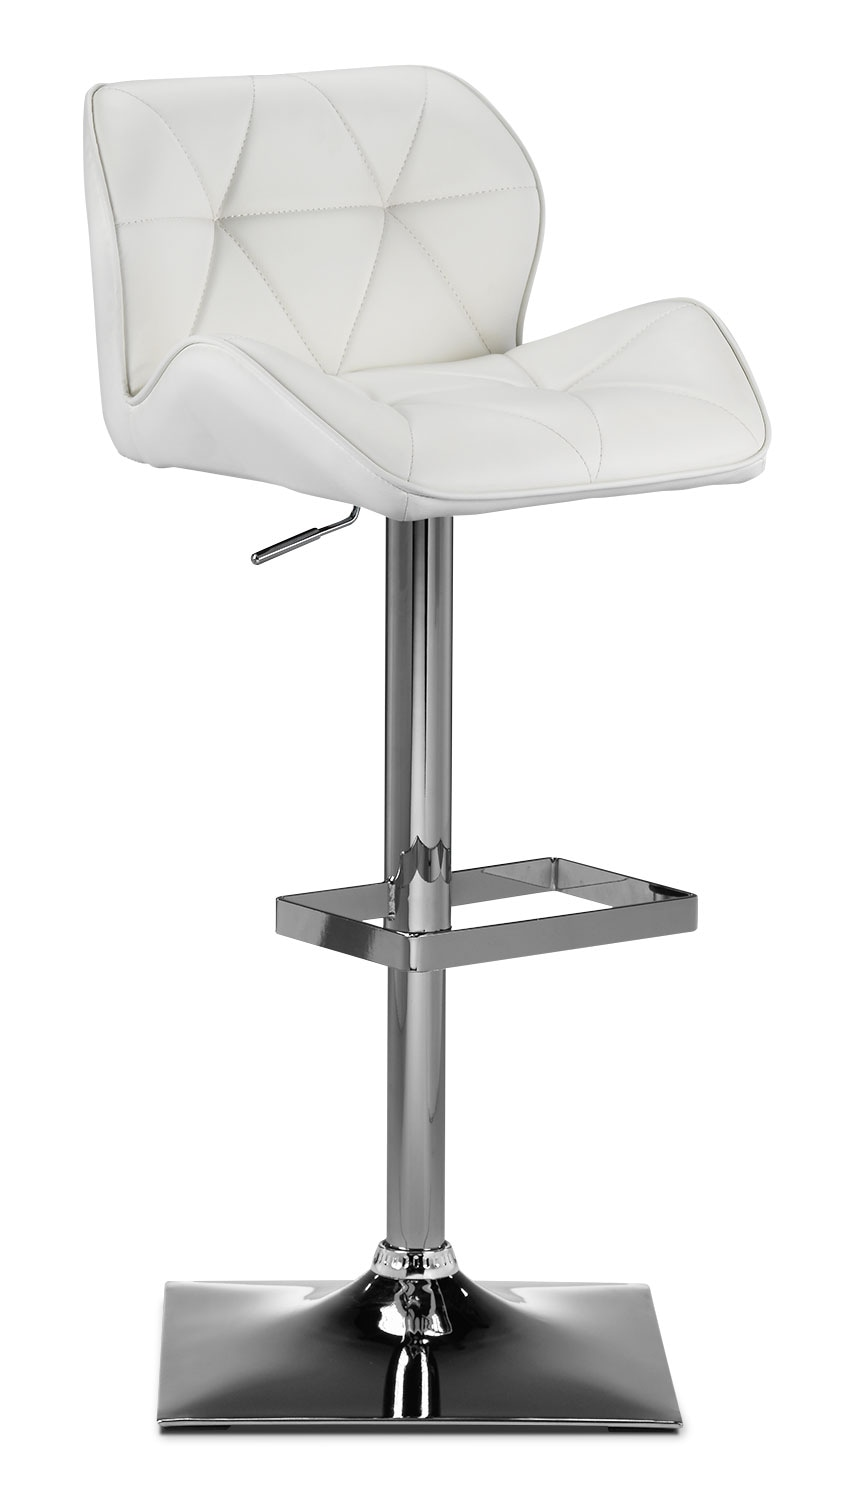 Casual Dining Room Furniture - Boulton Barstool - White